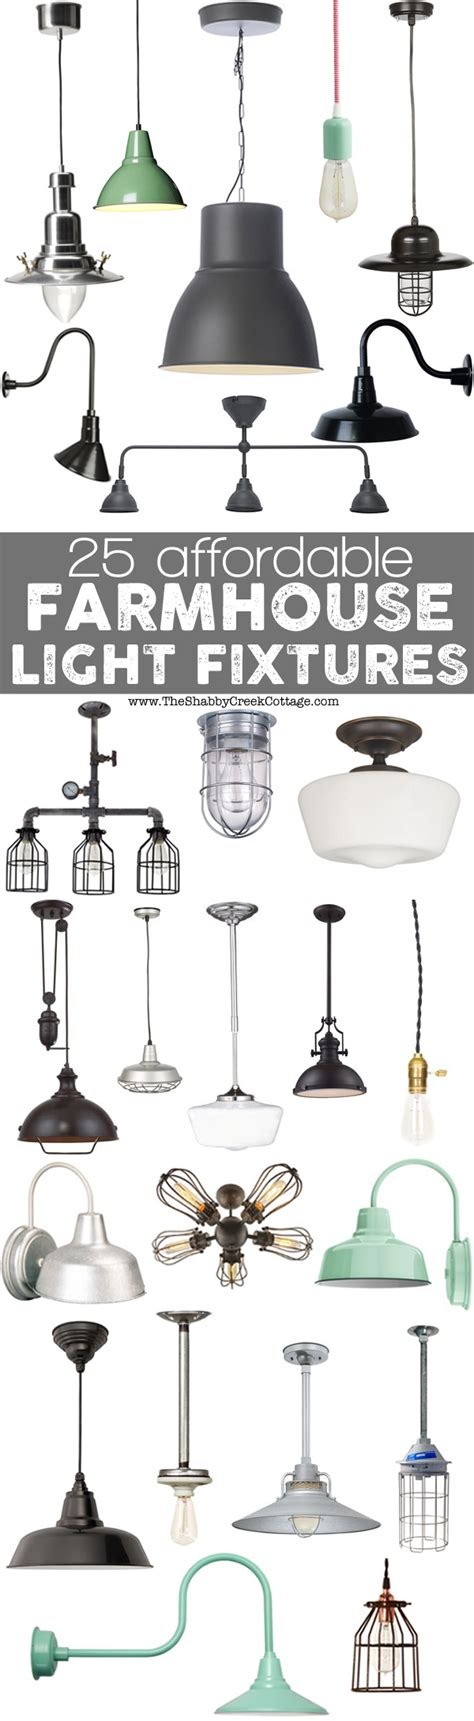 outdoor farm lighting fixtures 25 affordable farmhouse light fixtures